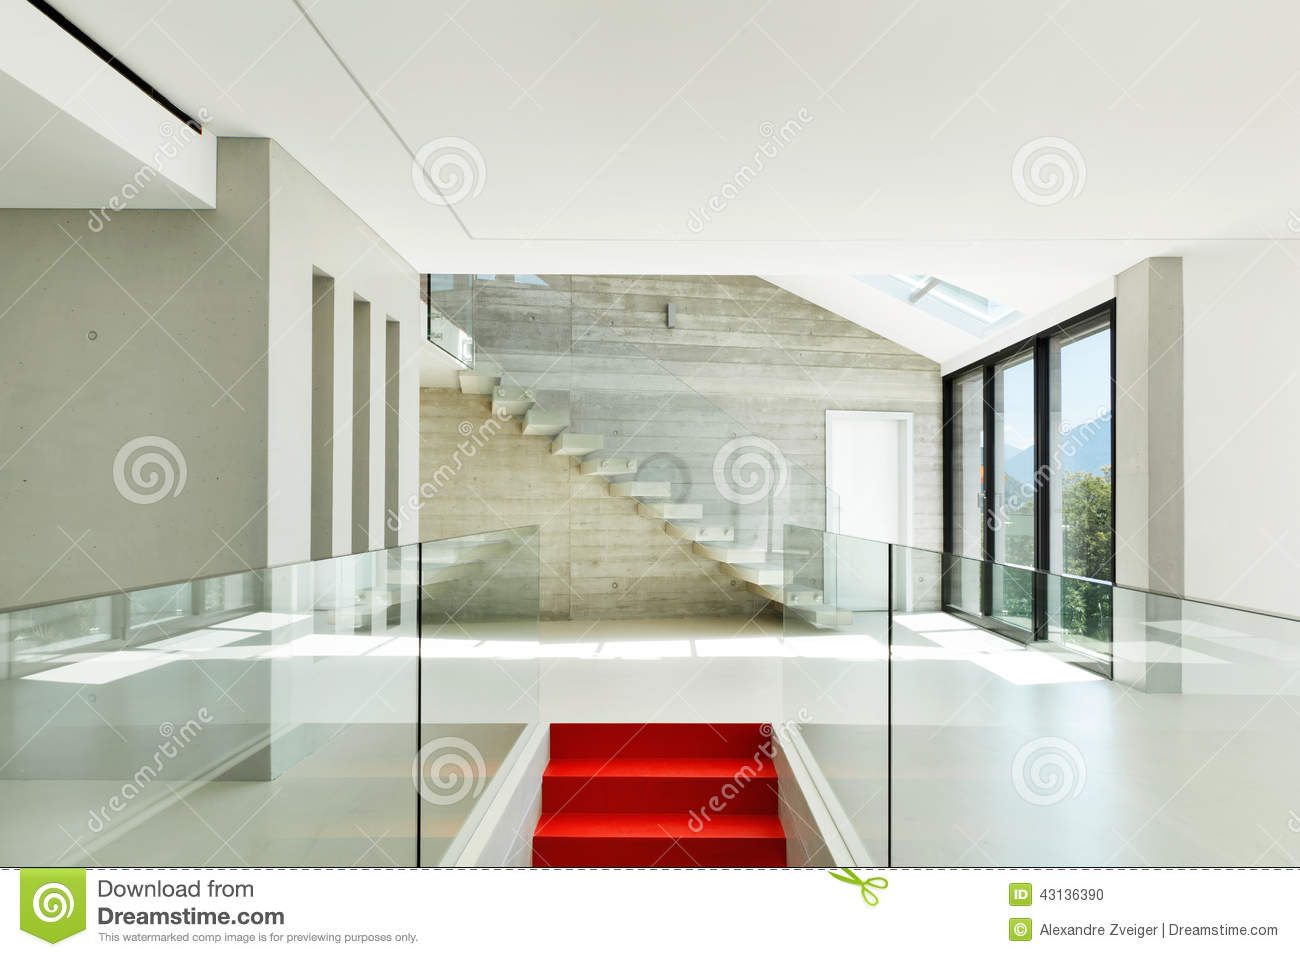 House interior modern architecture staircase view